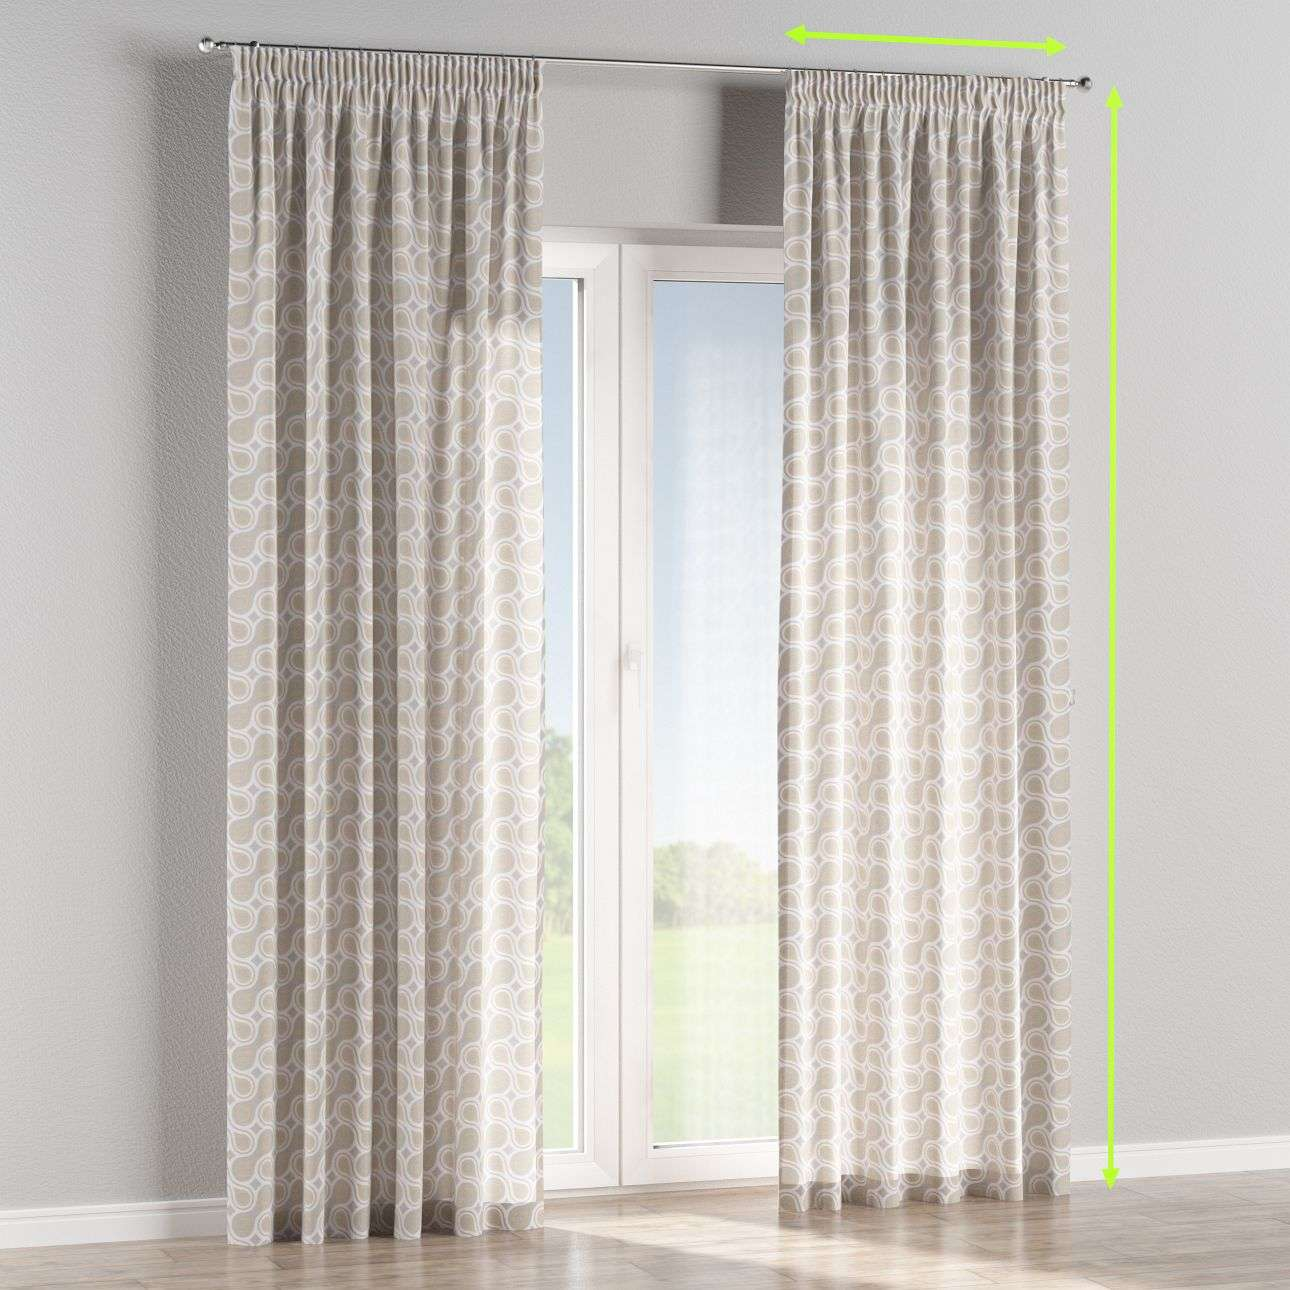 Pencil pleat lined curtains in collection Flowers, fabric: 311-11